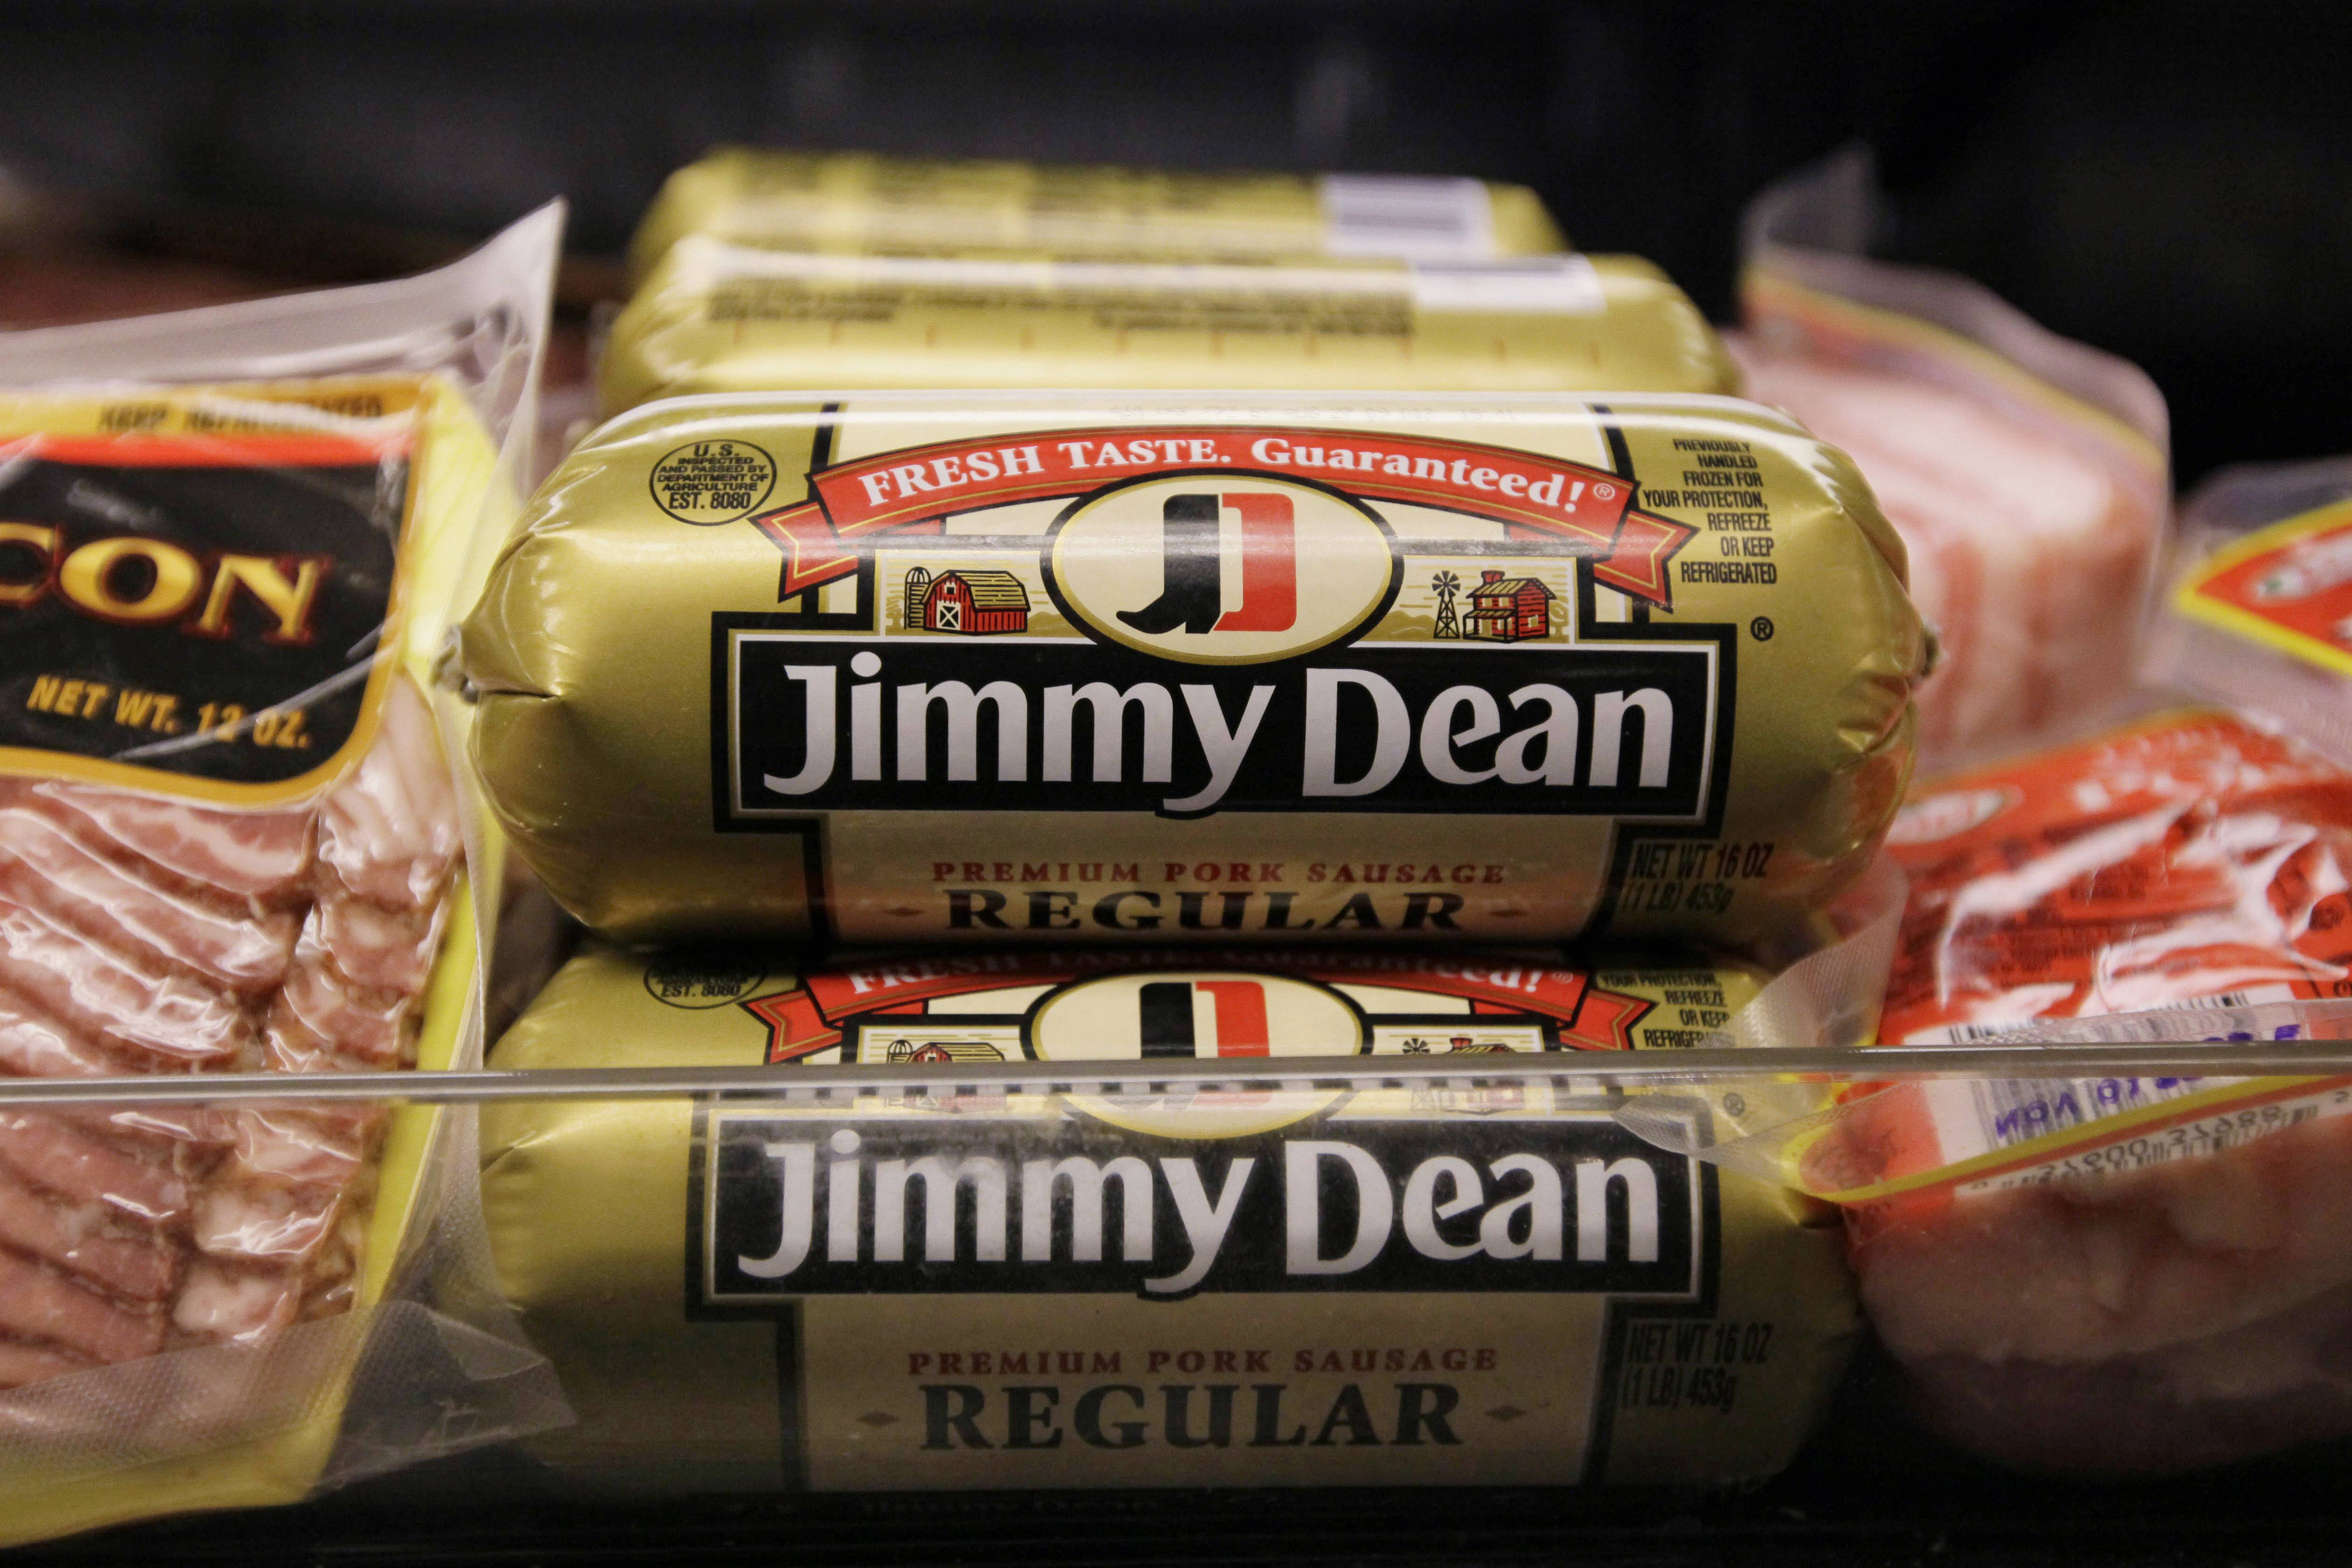 Hillshire Brands is buying Pinnacle Foods, whose brands include Duncan Hines and Aunt Jemima, in a cash-and-stock deal valued at approximately $4.23 billion, the companies announced Monday. Hillshire Brands' roster of brands include Jimmy Dean meats, Ball Park hot dogs and Sara Lee frozen bakery goods. The combined company will use the Hillshire Brands name and be based in Chicago.